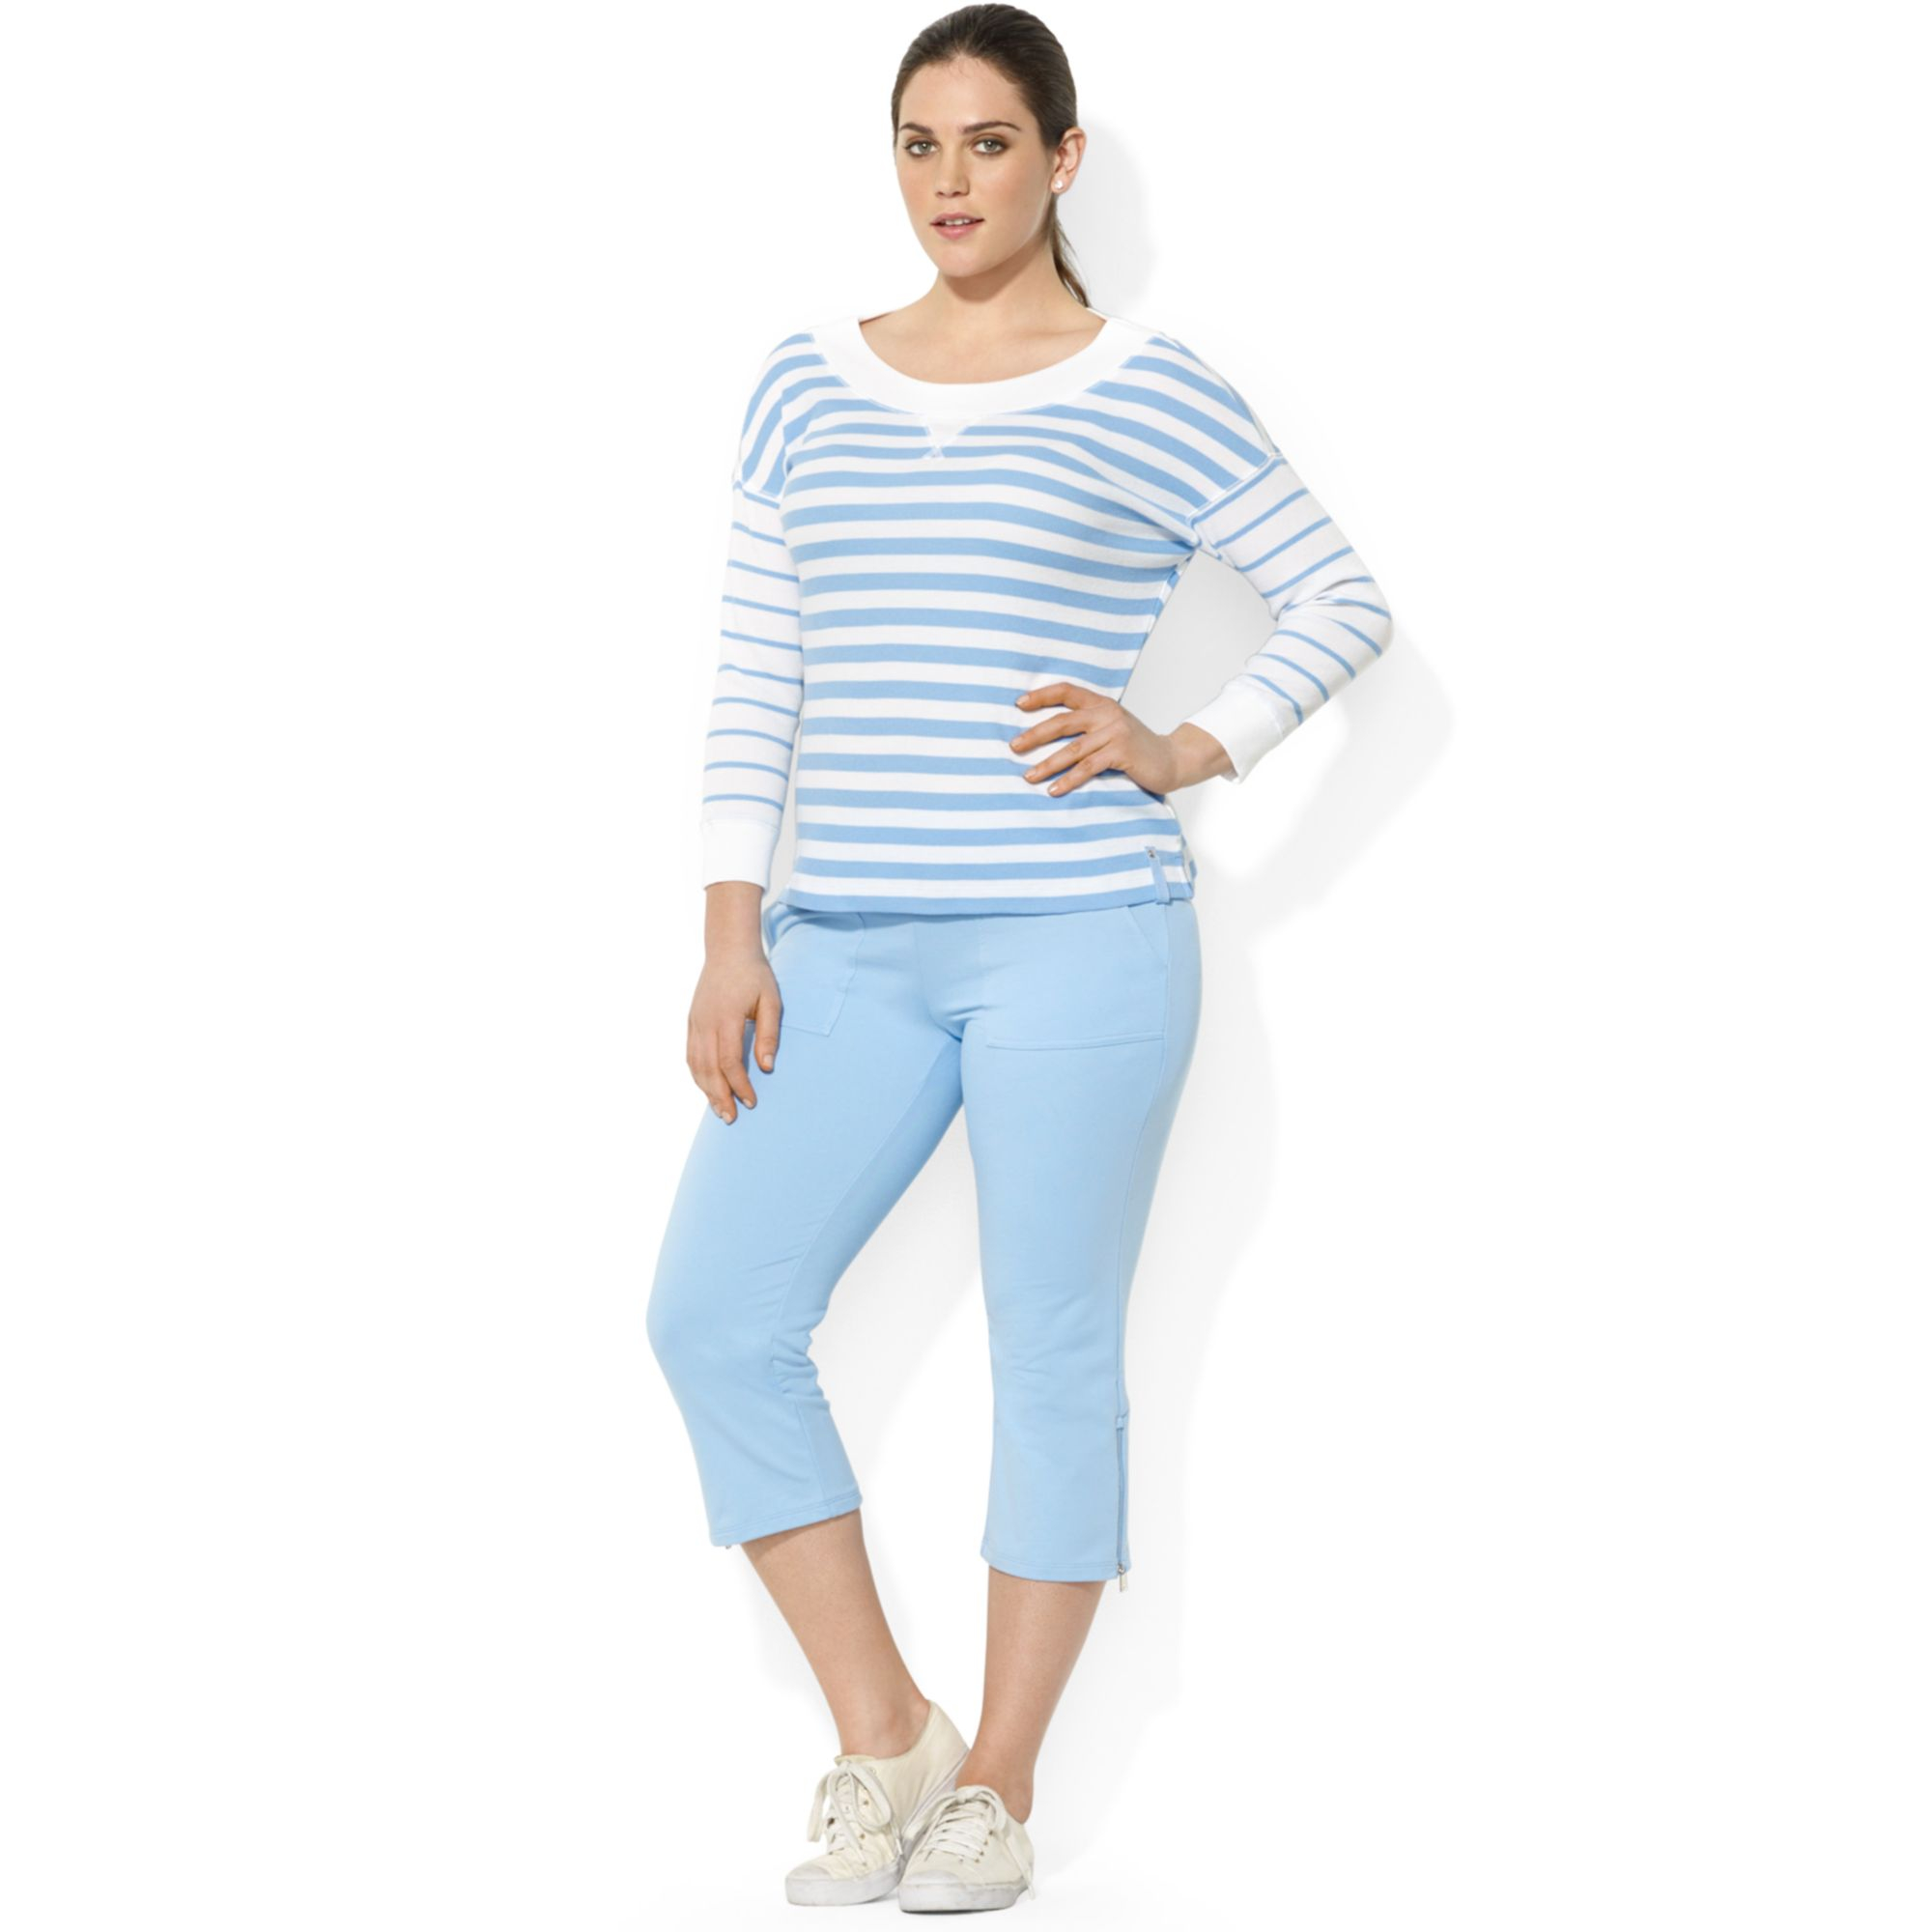 lauren by ralph lauren plus size longsleeve striped waffleknit top in blue chatham blue white. Black Bedroom Furniture Sets. Home Design Ideas